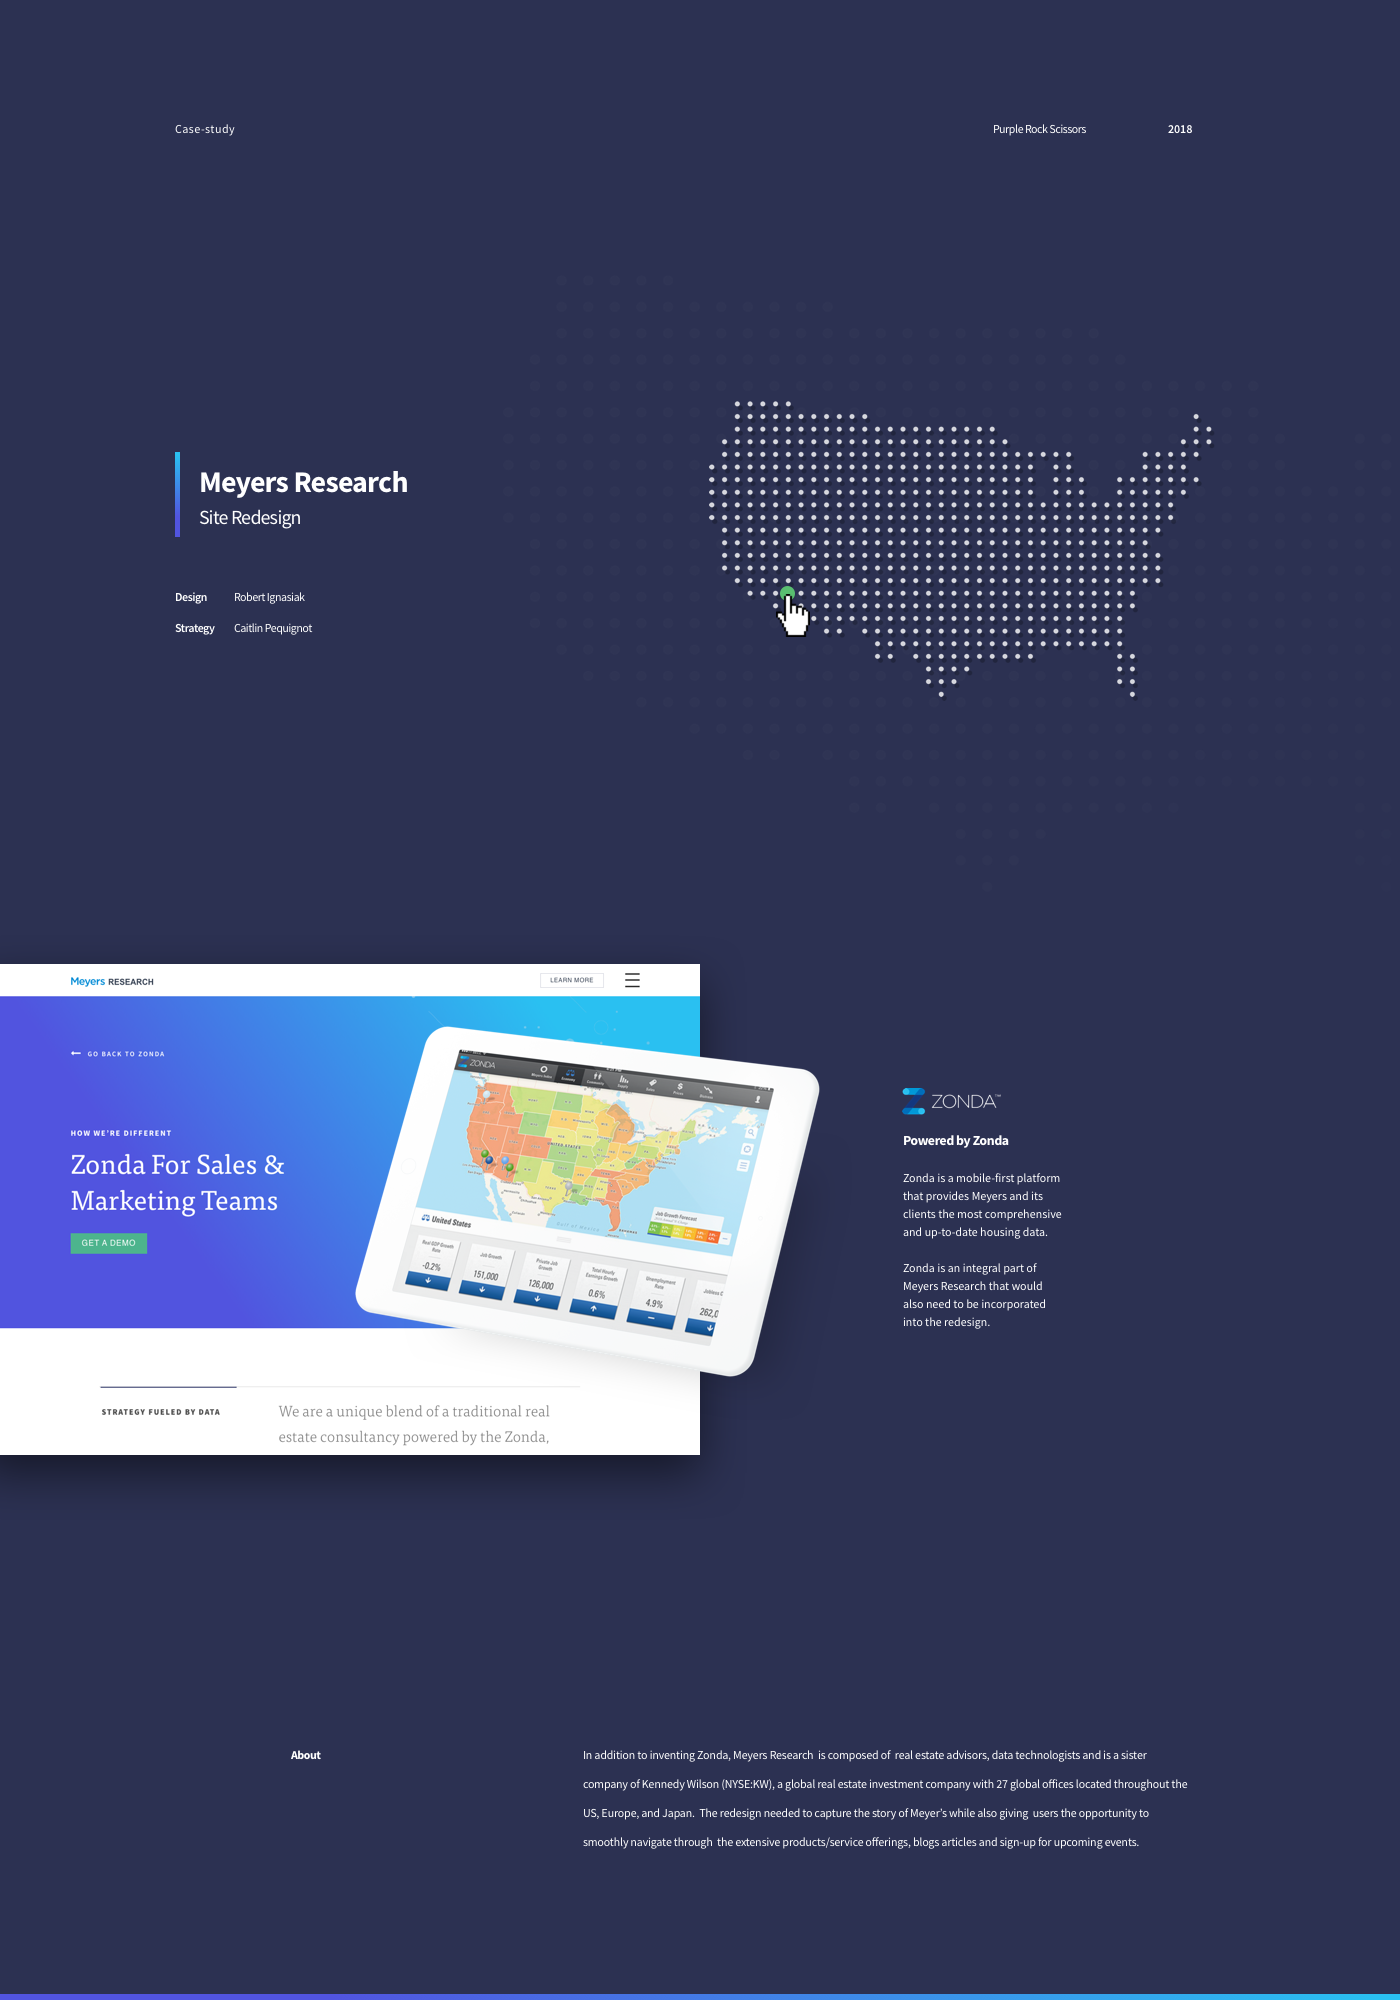 Meyers Research - Redesign on Behance